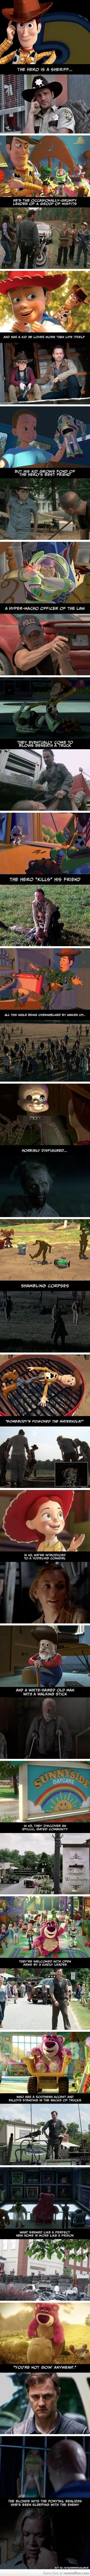 walking dead v toy story